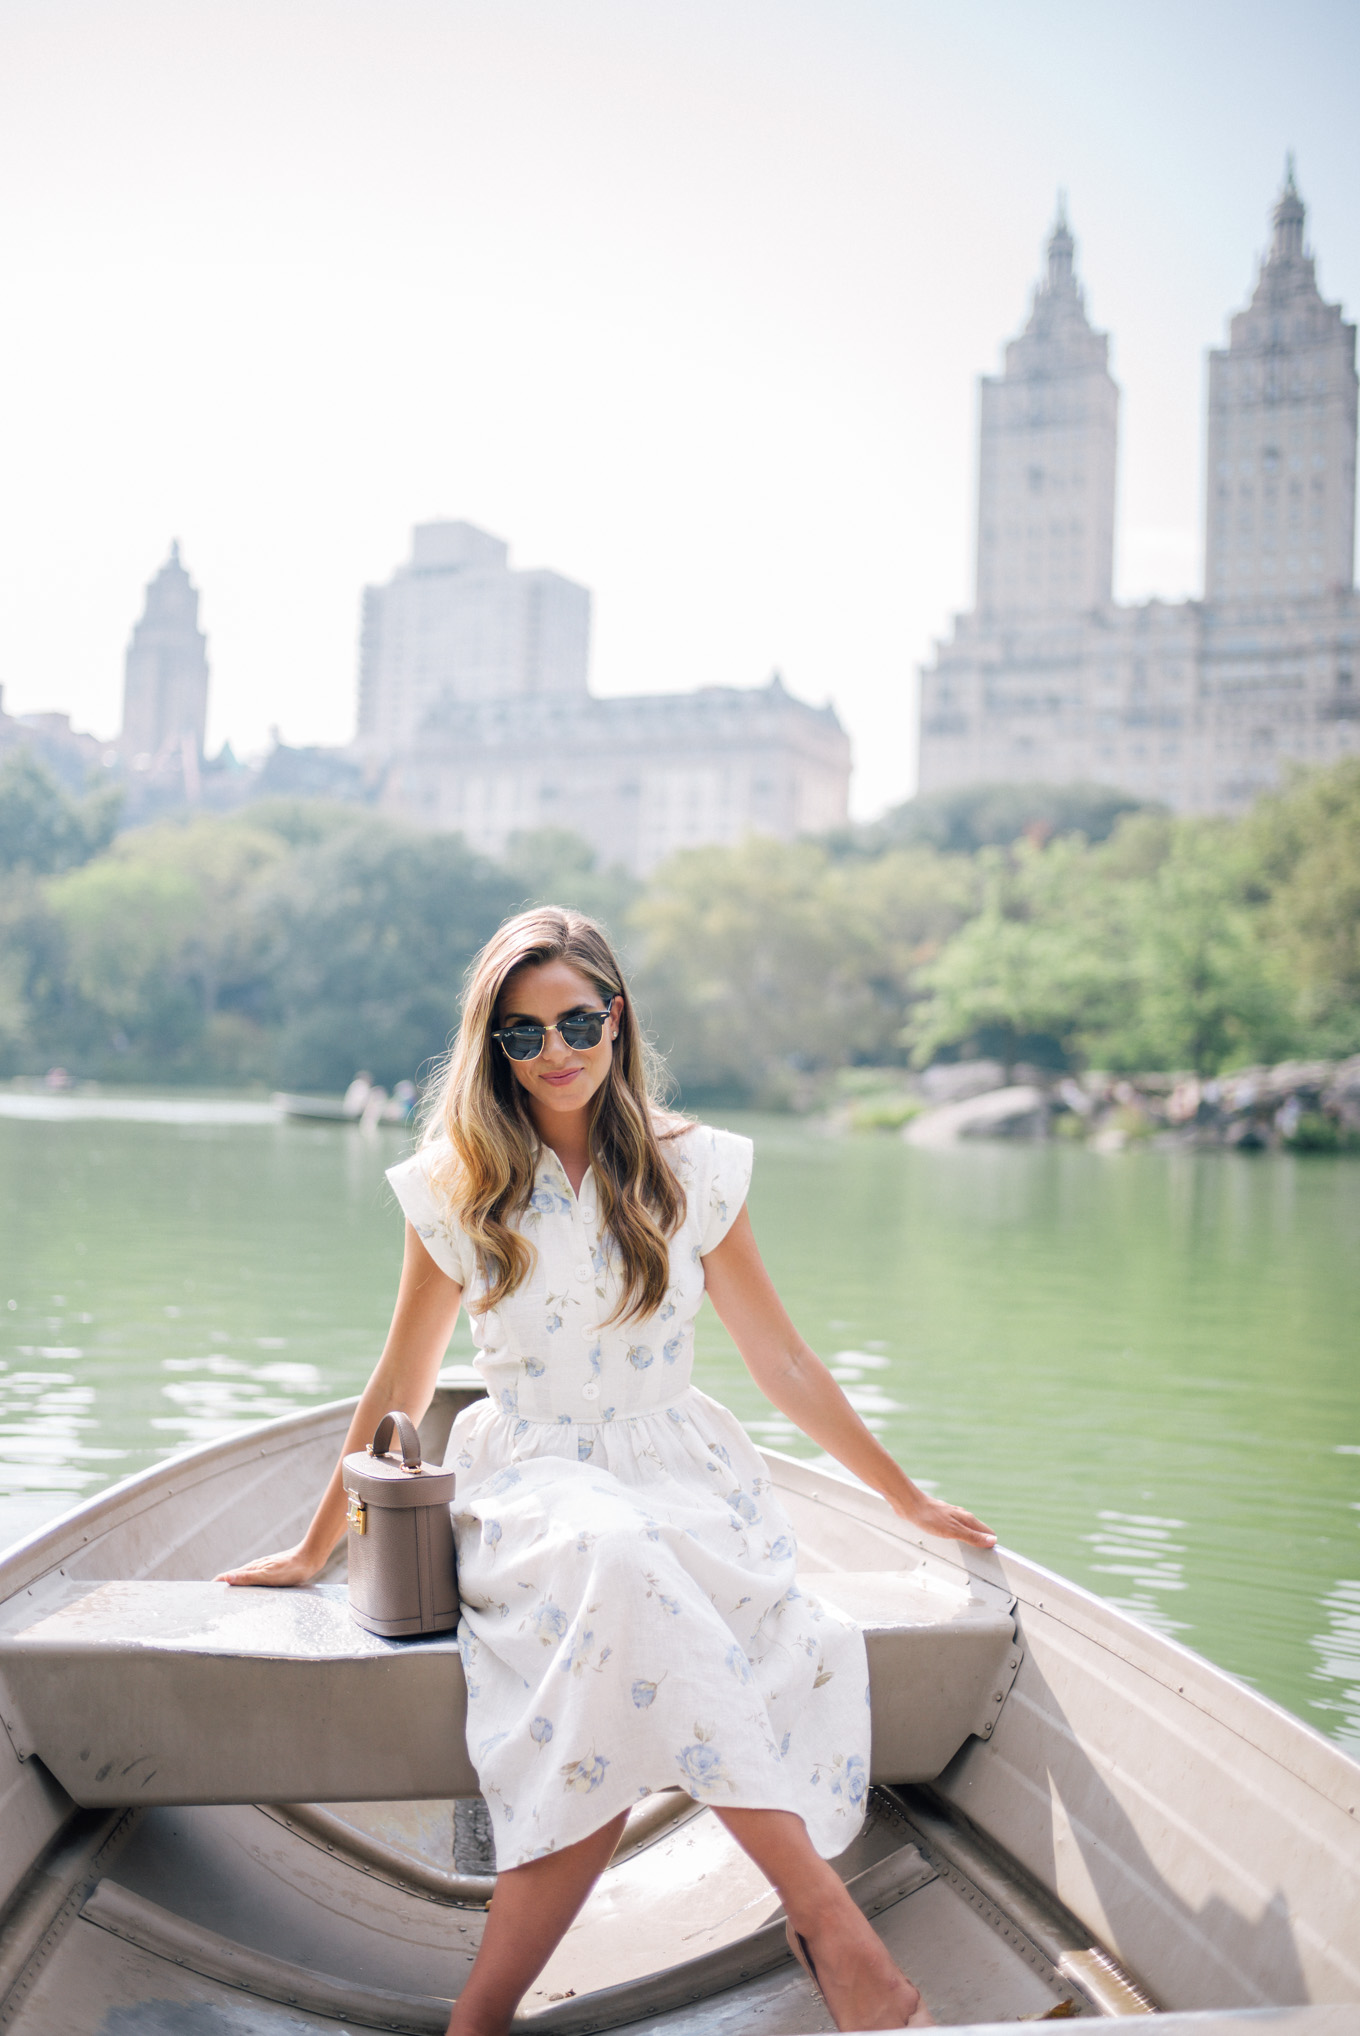 gmg-central-park-boat-ride-1002360